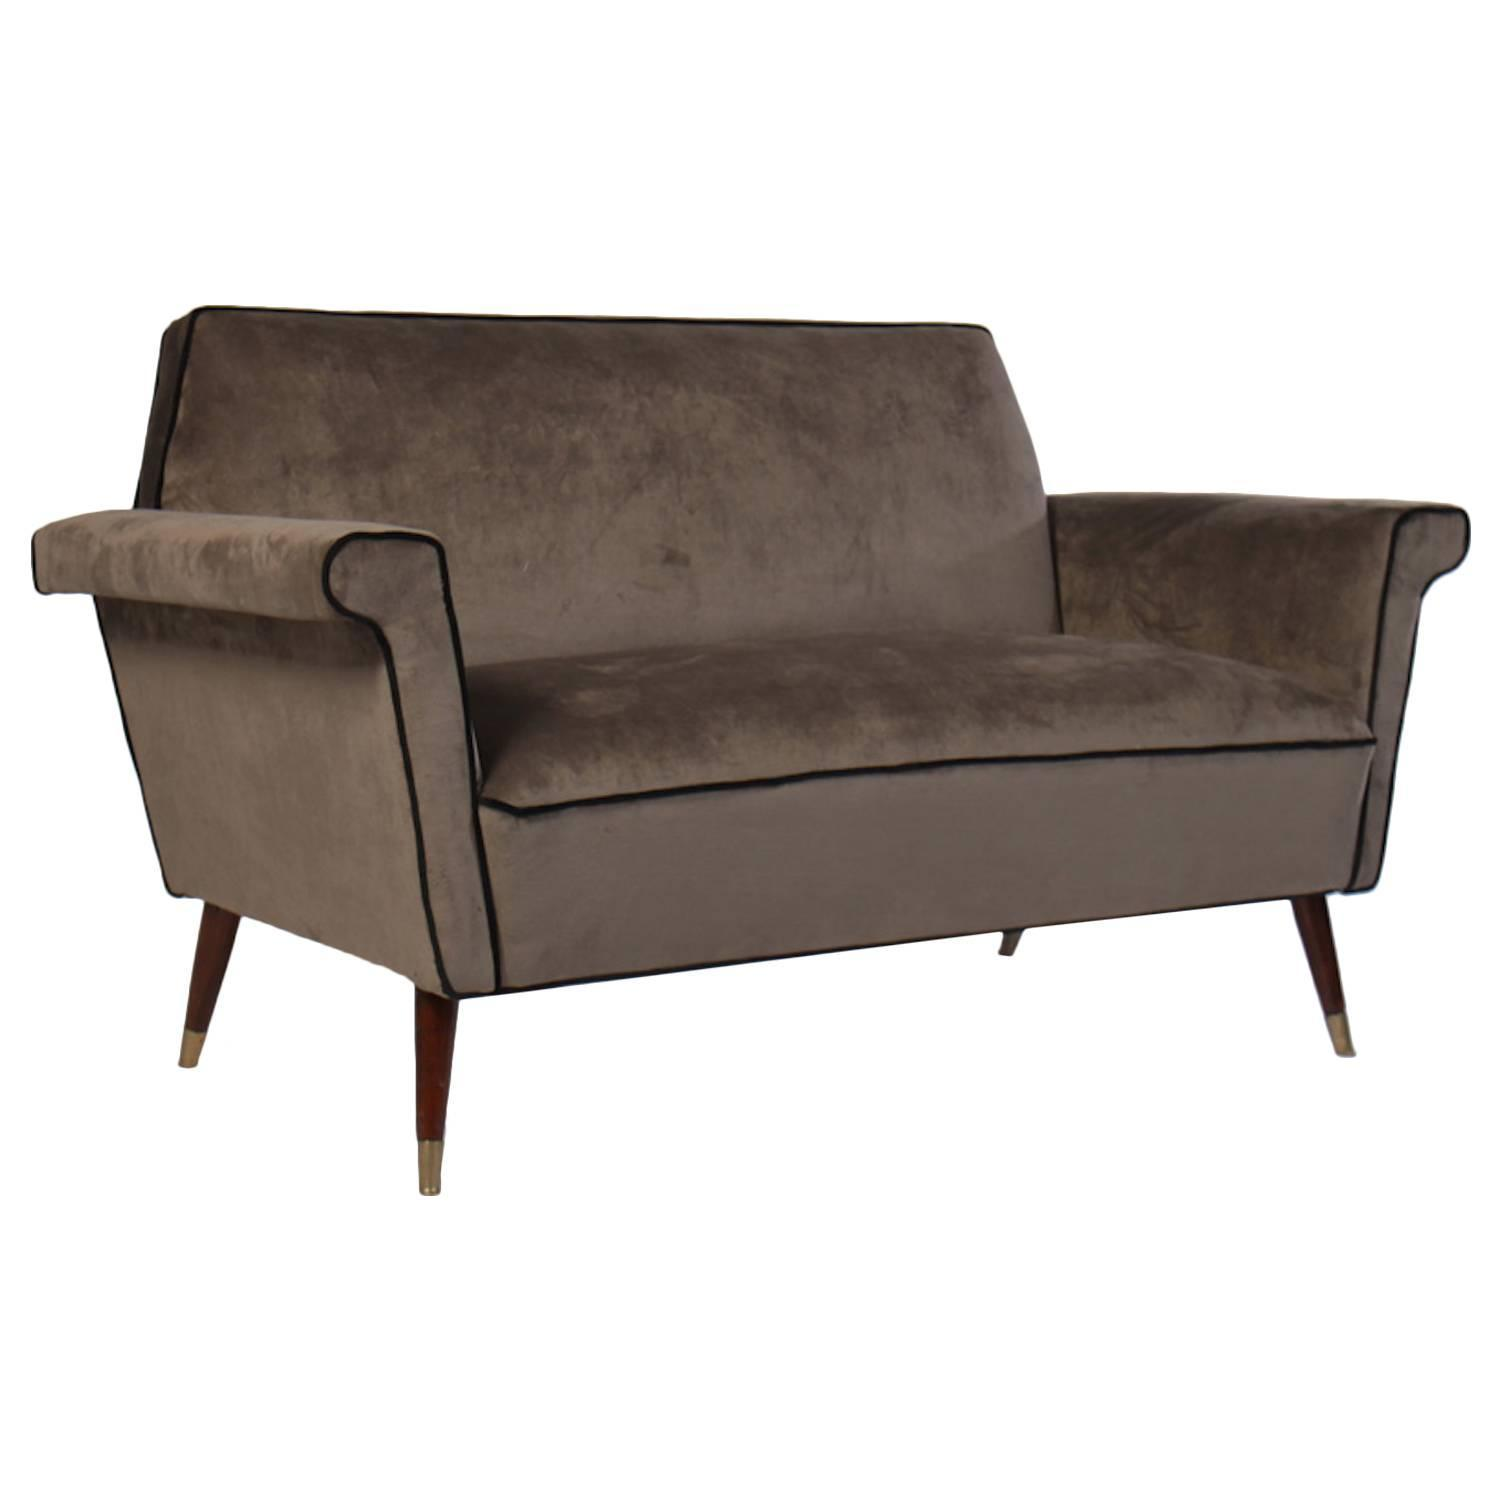 Italian mid century modern upholstered sofa 1960 for sale for Modern sofas for sale